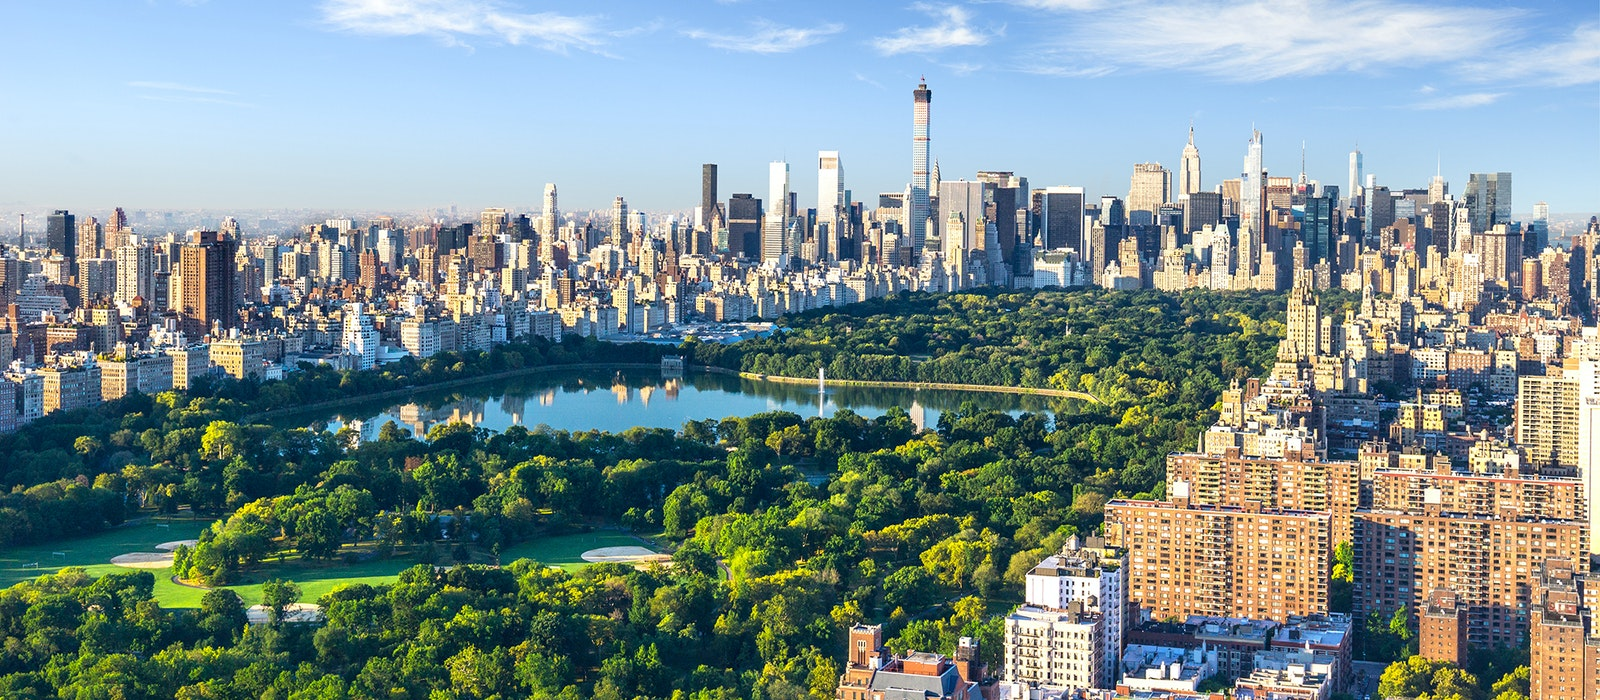 Even classic New York landmarks like the Met and the Statue of Liberty have exciting reasons to revisit this summer.